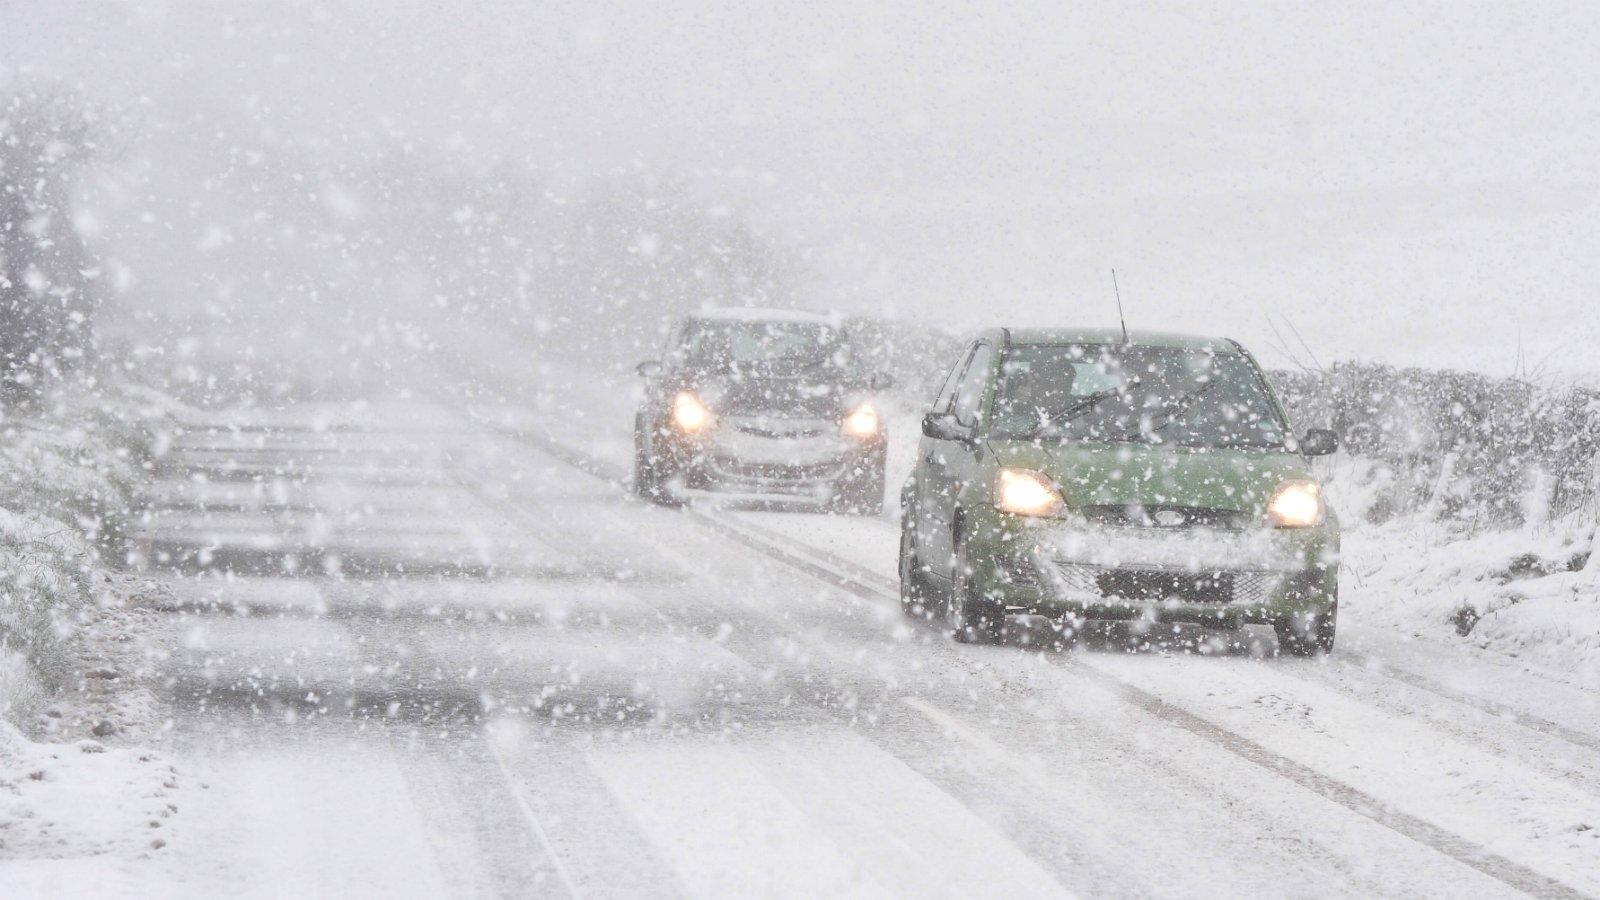 driving in bad weather - what you need to know